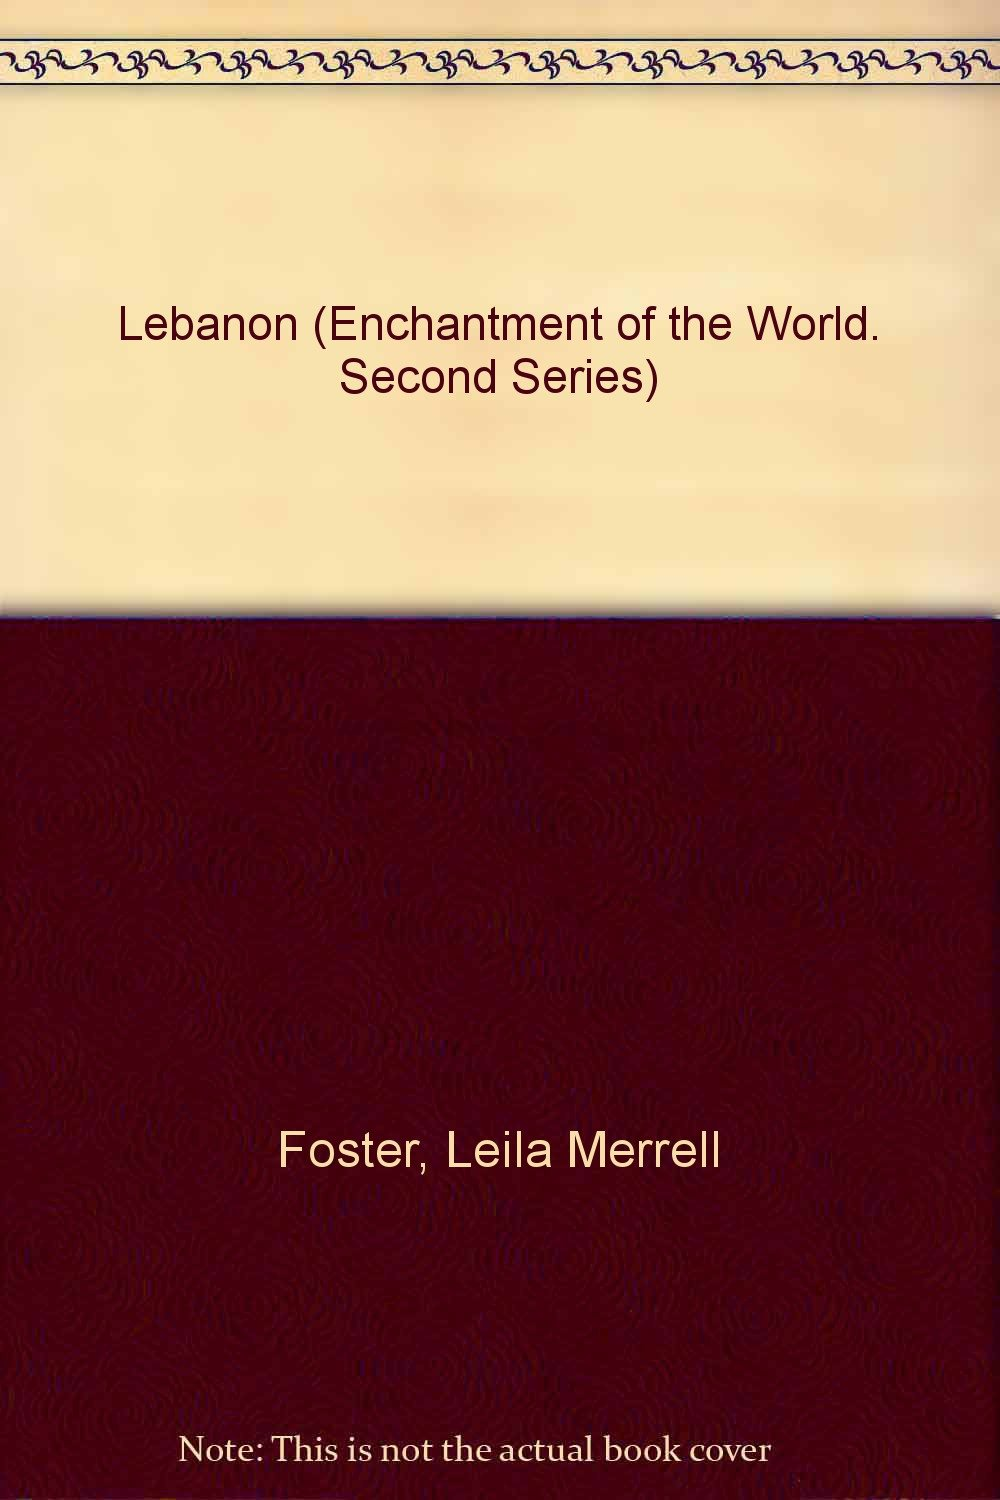 Lebanon (ENCHANTMENT OF THE WORLD SECOND SERIES)